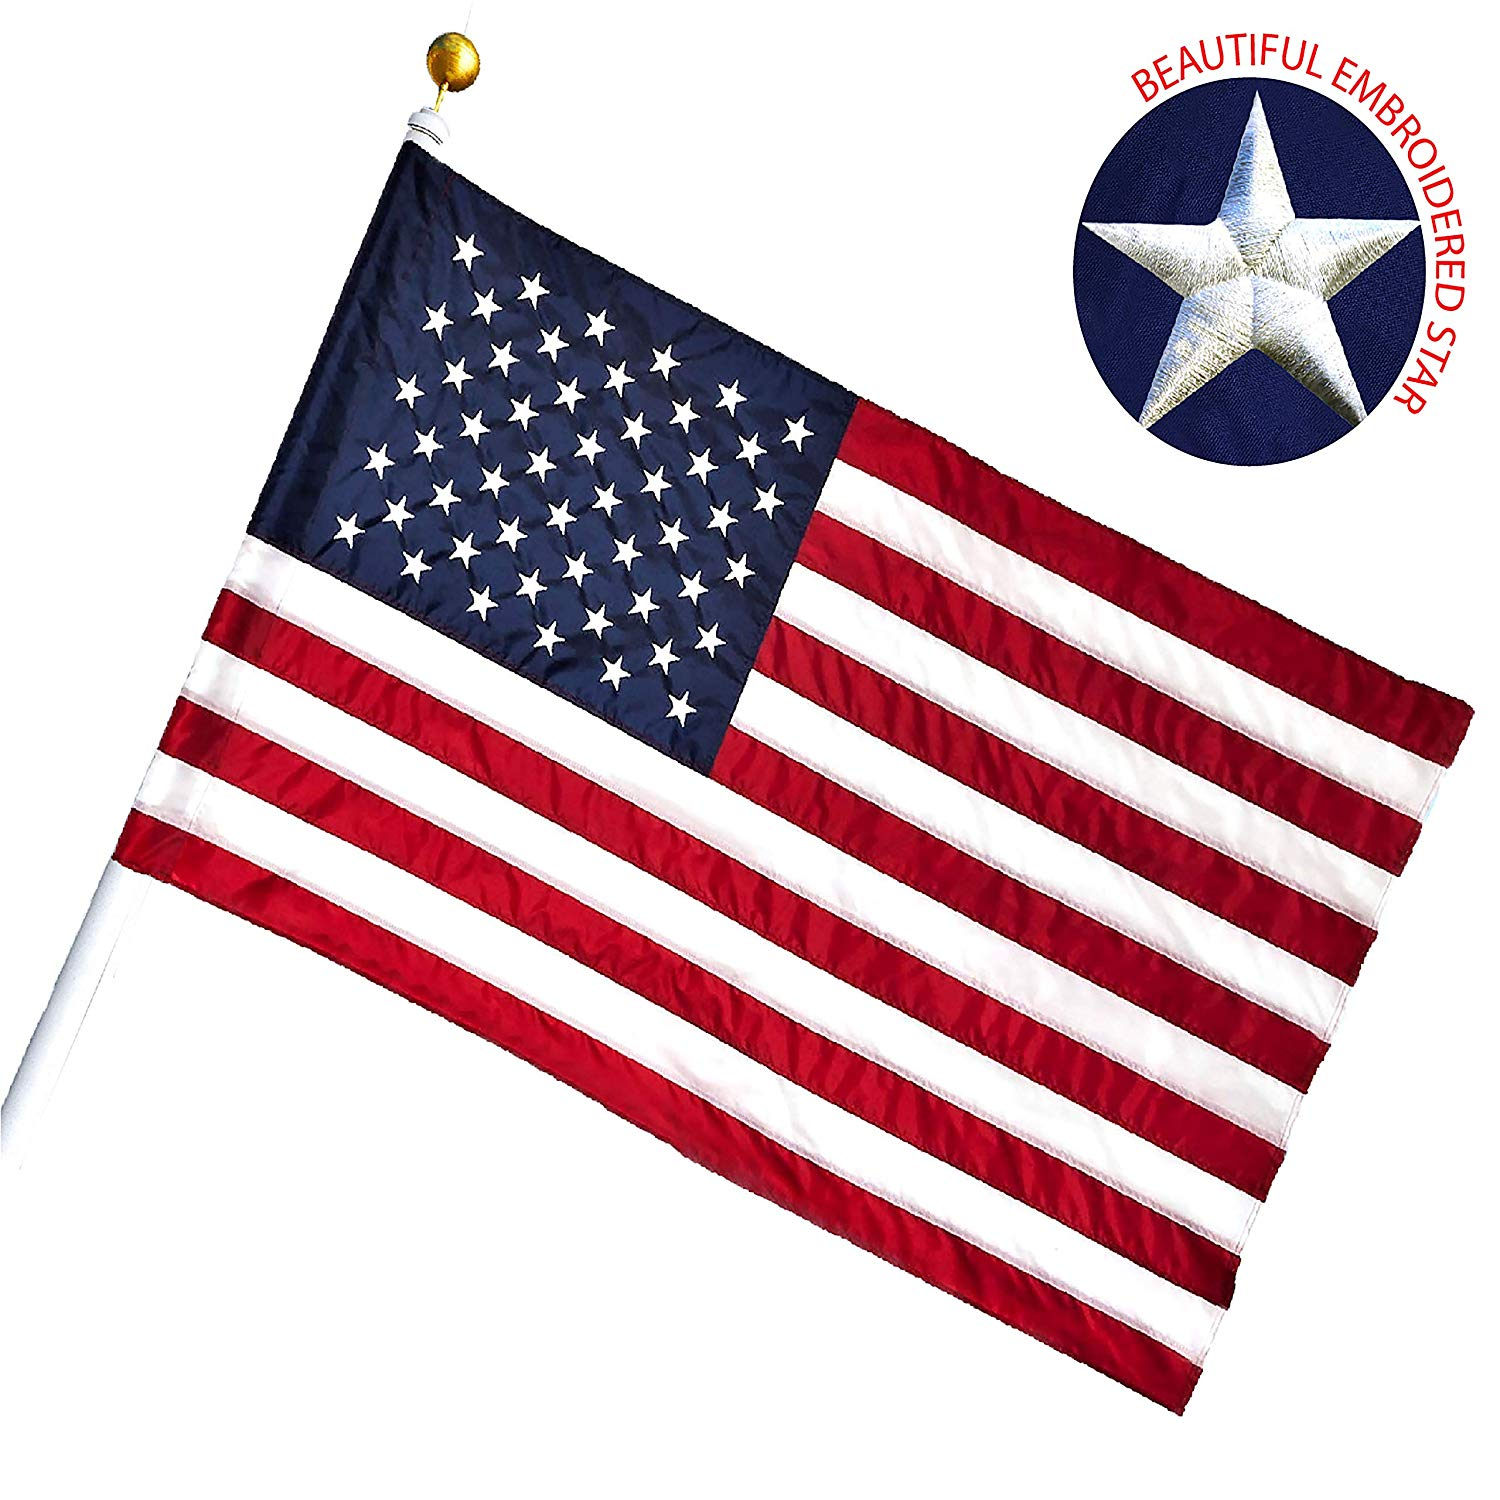 G128 - American USA US Flag 2.5x4 Ft Pole Sleeve Banner Style Embroidered Stars Sewn Stripes Pole Sleeve (Flag Pole is NOT Included)